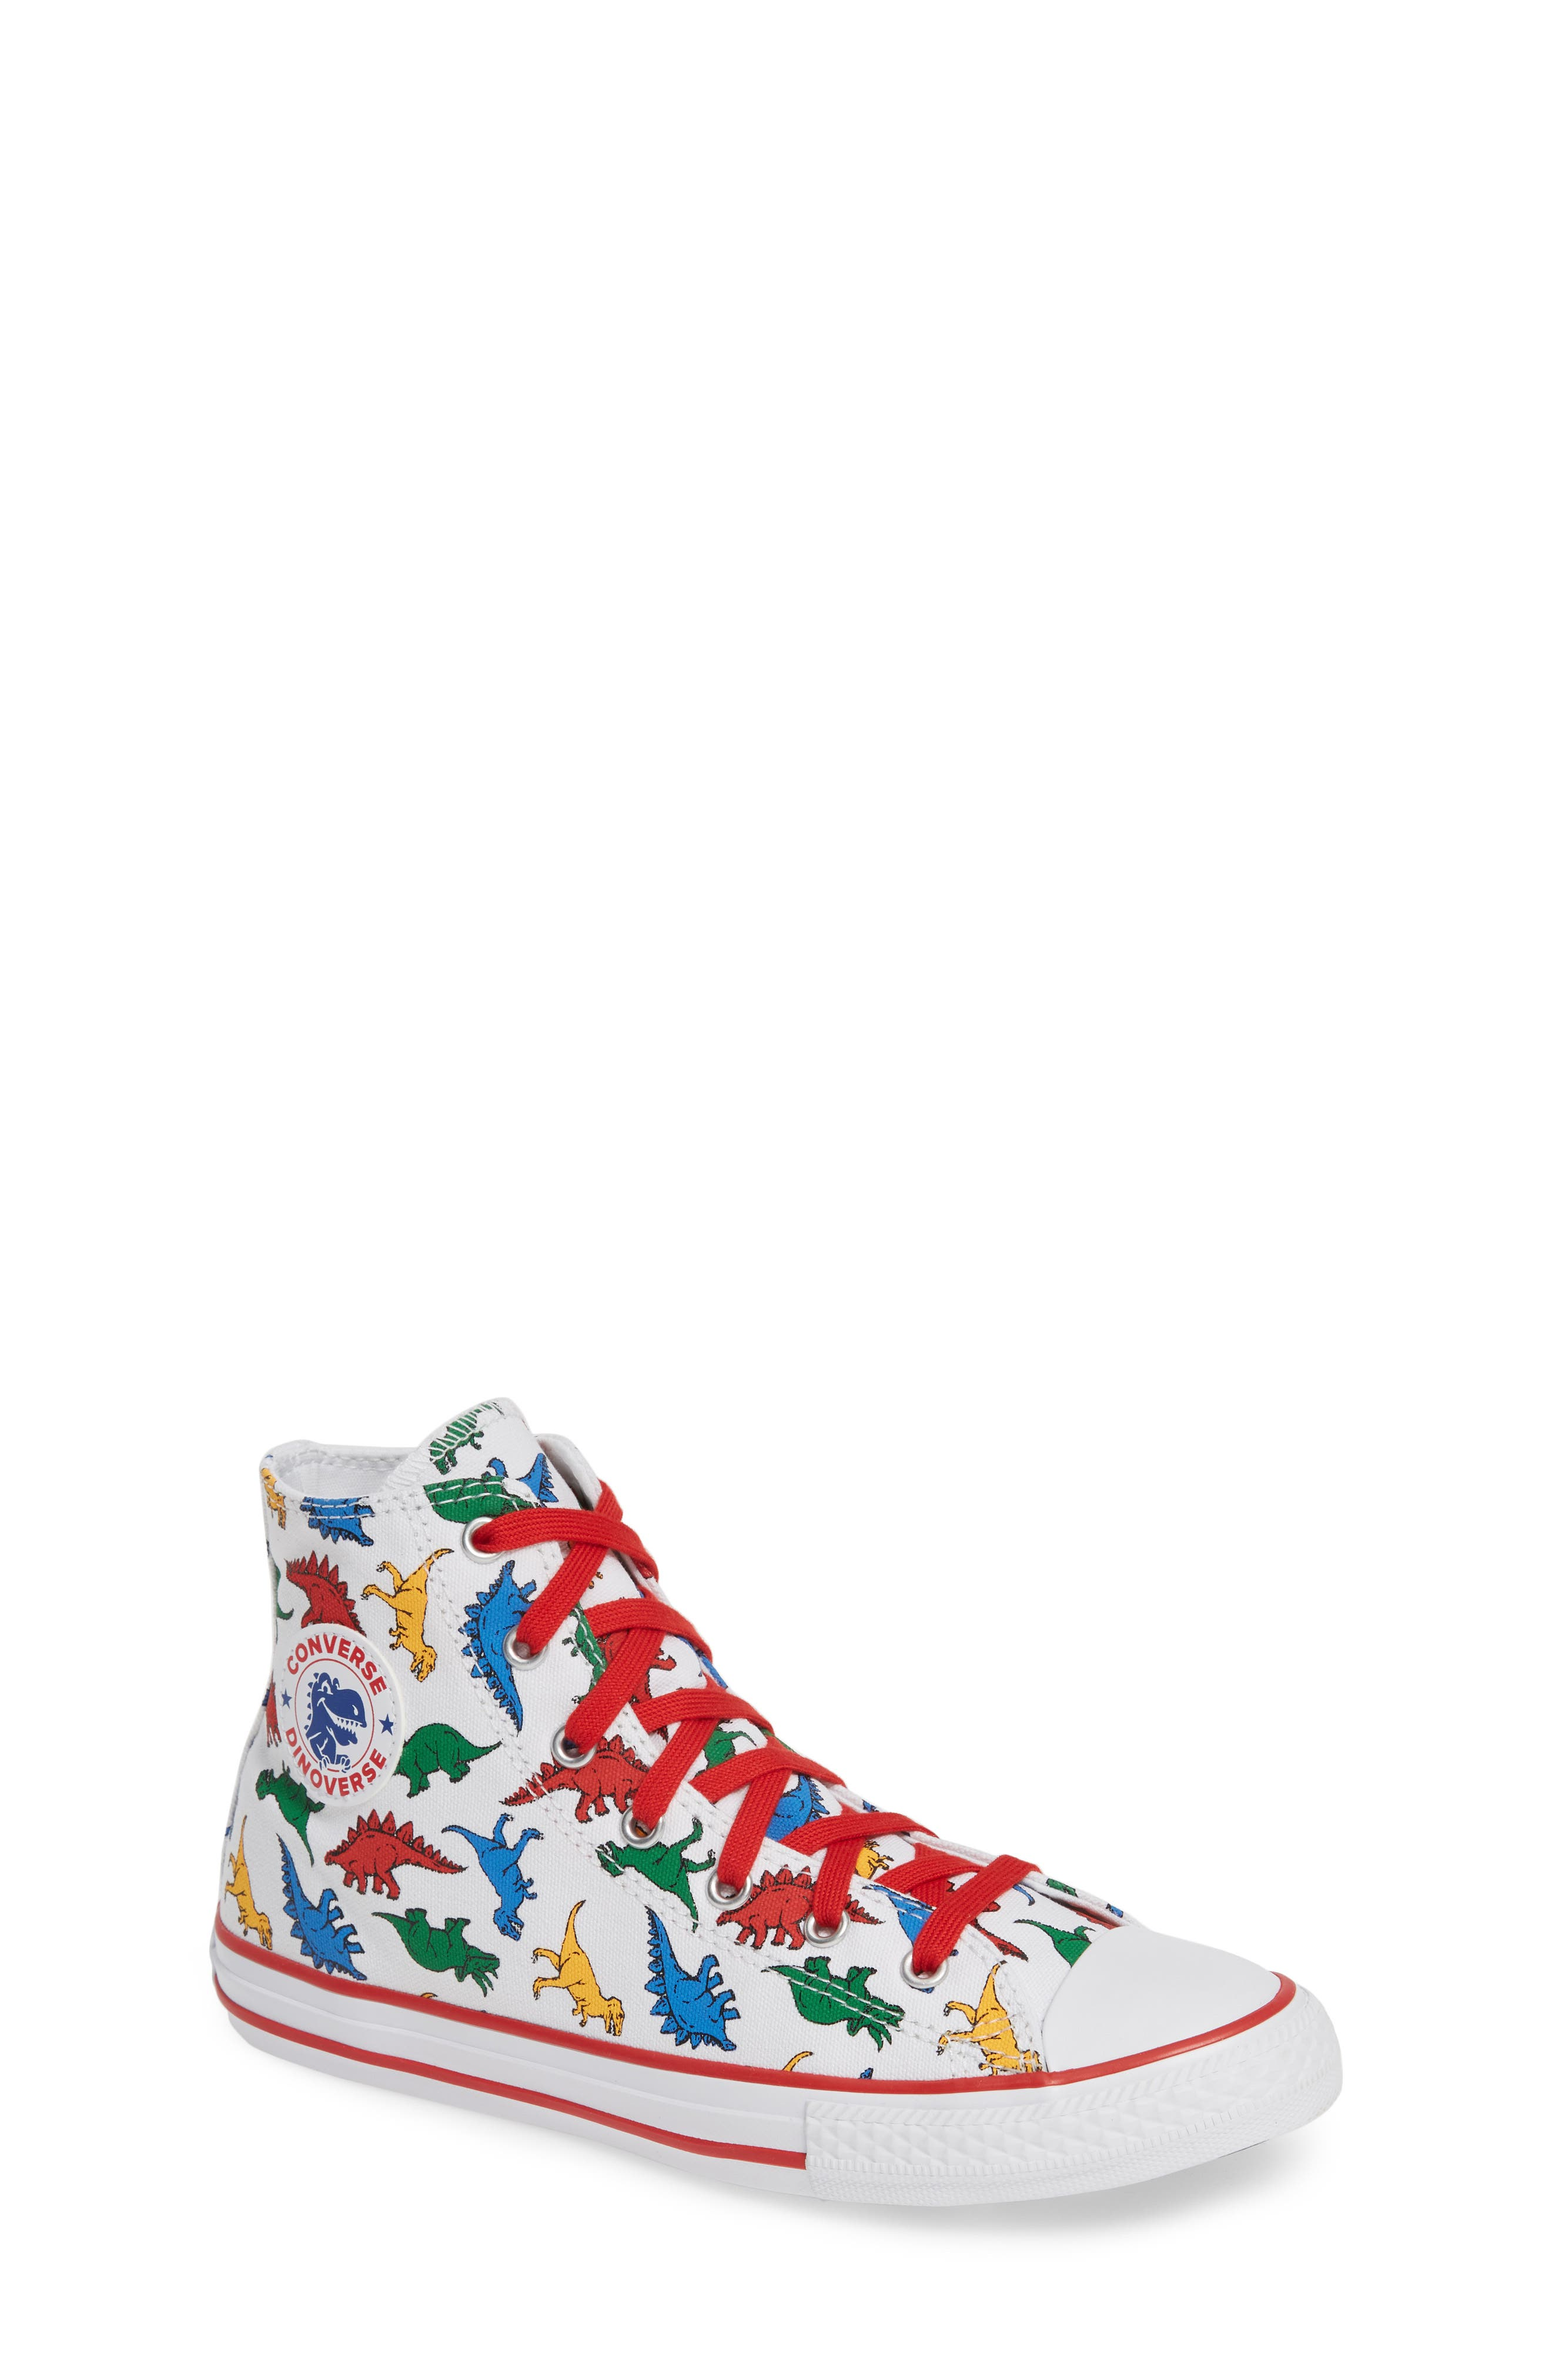 CONVERSE,                             Chuck Taylor<sup>®</sup> All Star<sup>®</sup> Dino High Top Sneaker,                             Main thumbnail 1, color,                             WHITE/ ENAMEL RED/ BLUE DINO